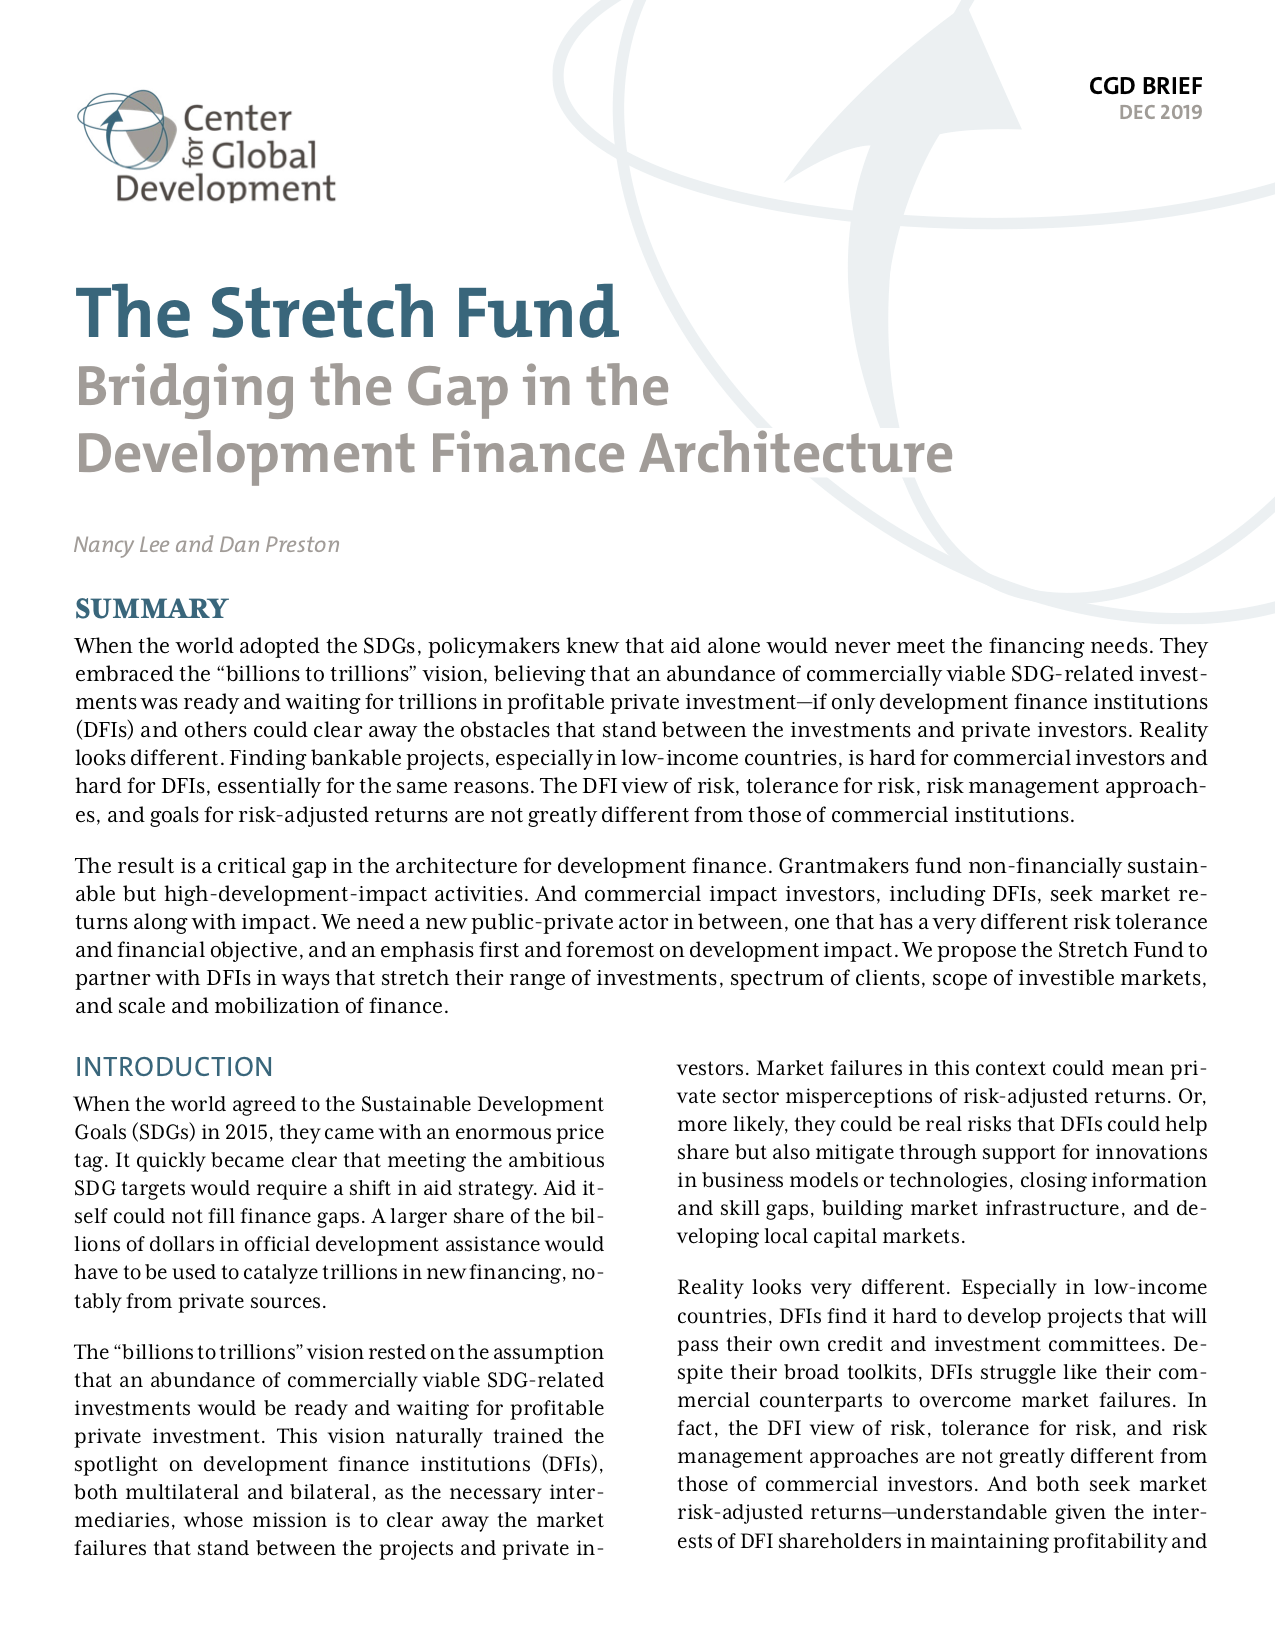 The Stretch Fund: Bridging the Gap in the Development Finance Architecture